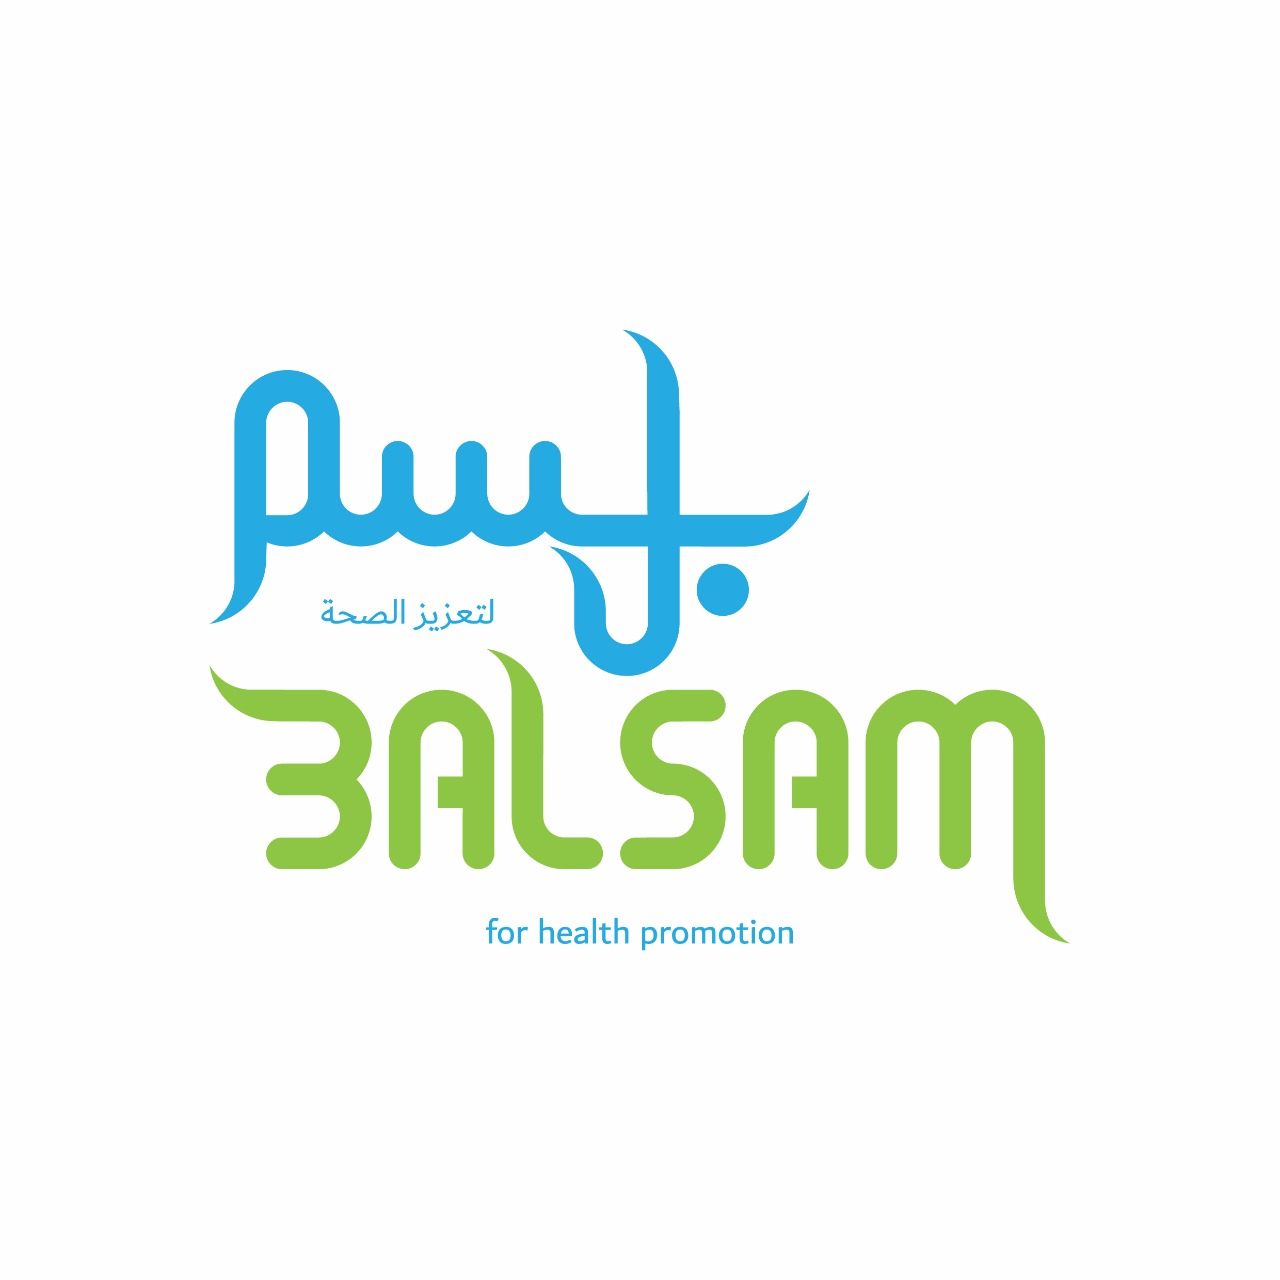 Balsam for Health Promotion